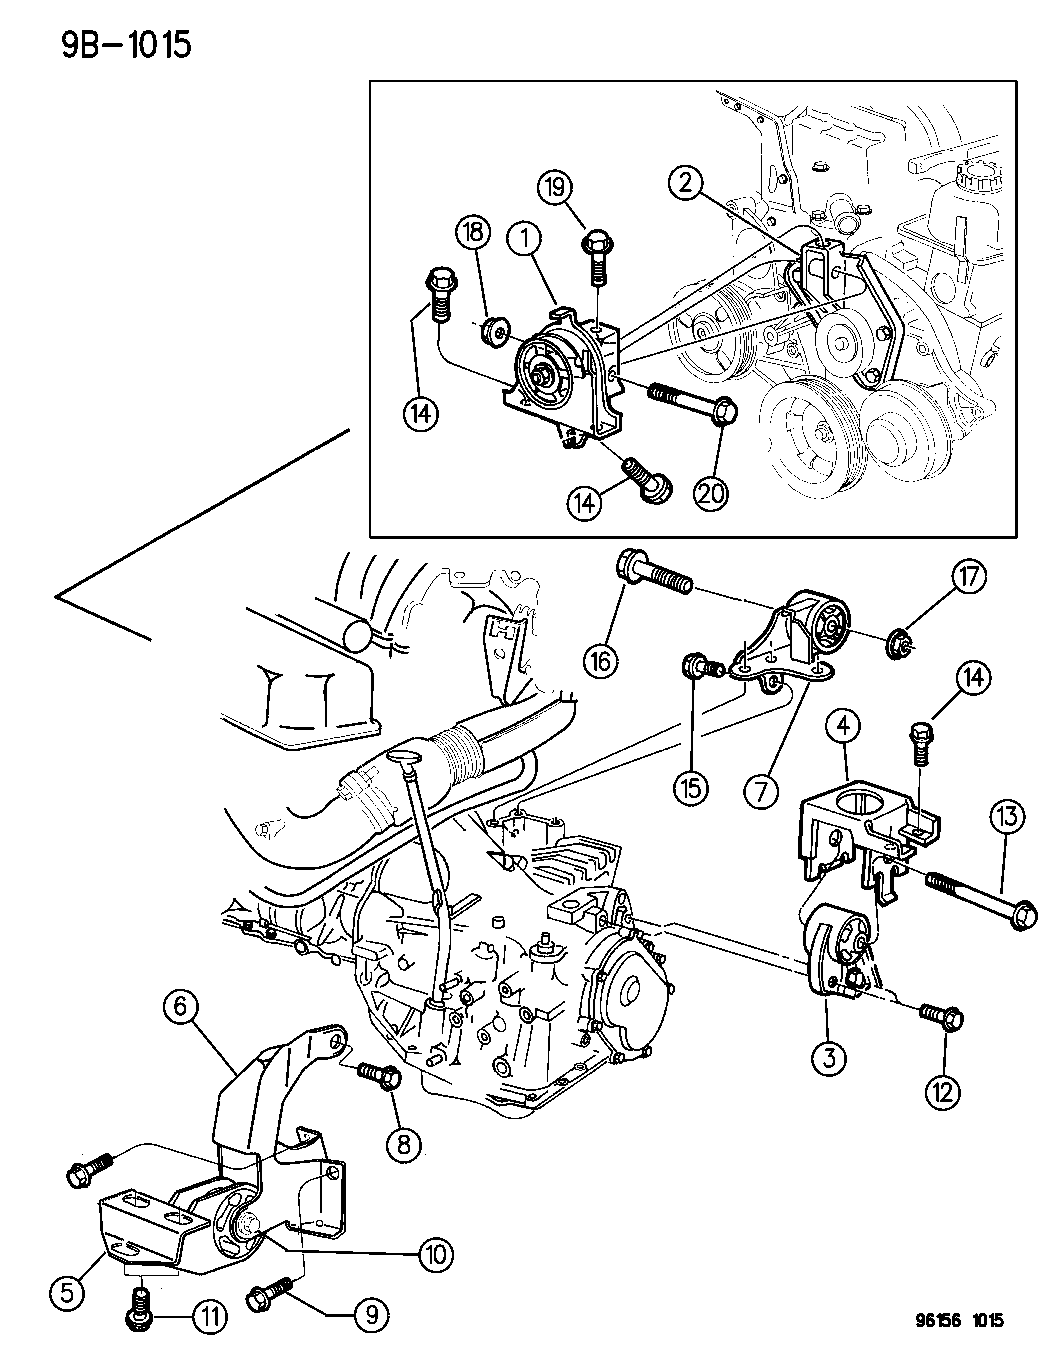 1996 Dodge Caravan Engine Diagram